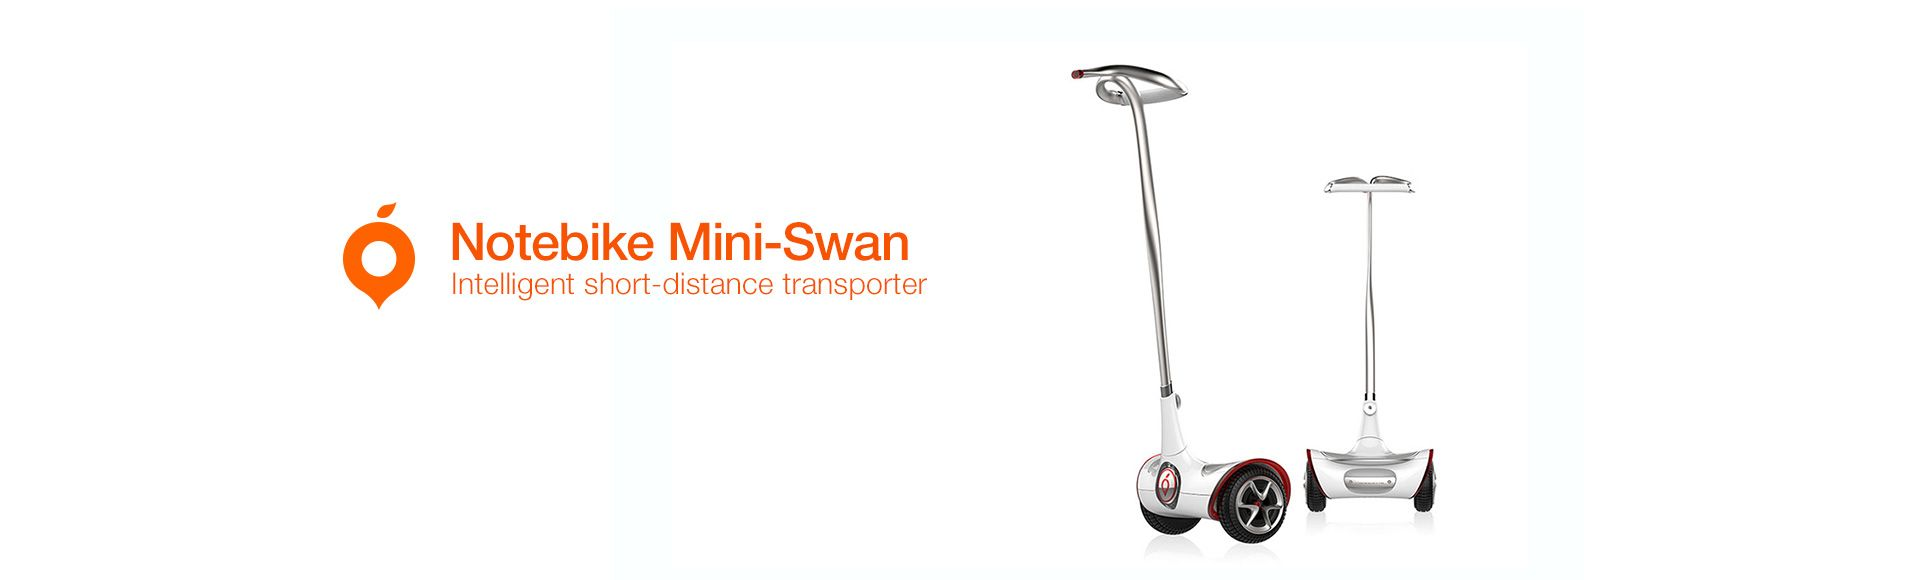 Notebike Mini-Swan - Intelligent short-distance transporter